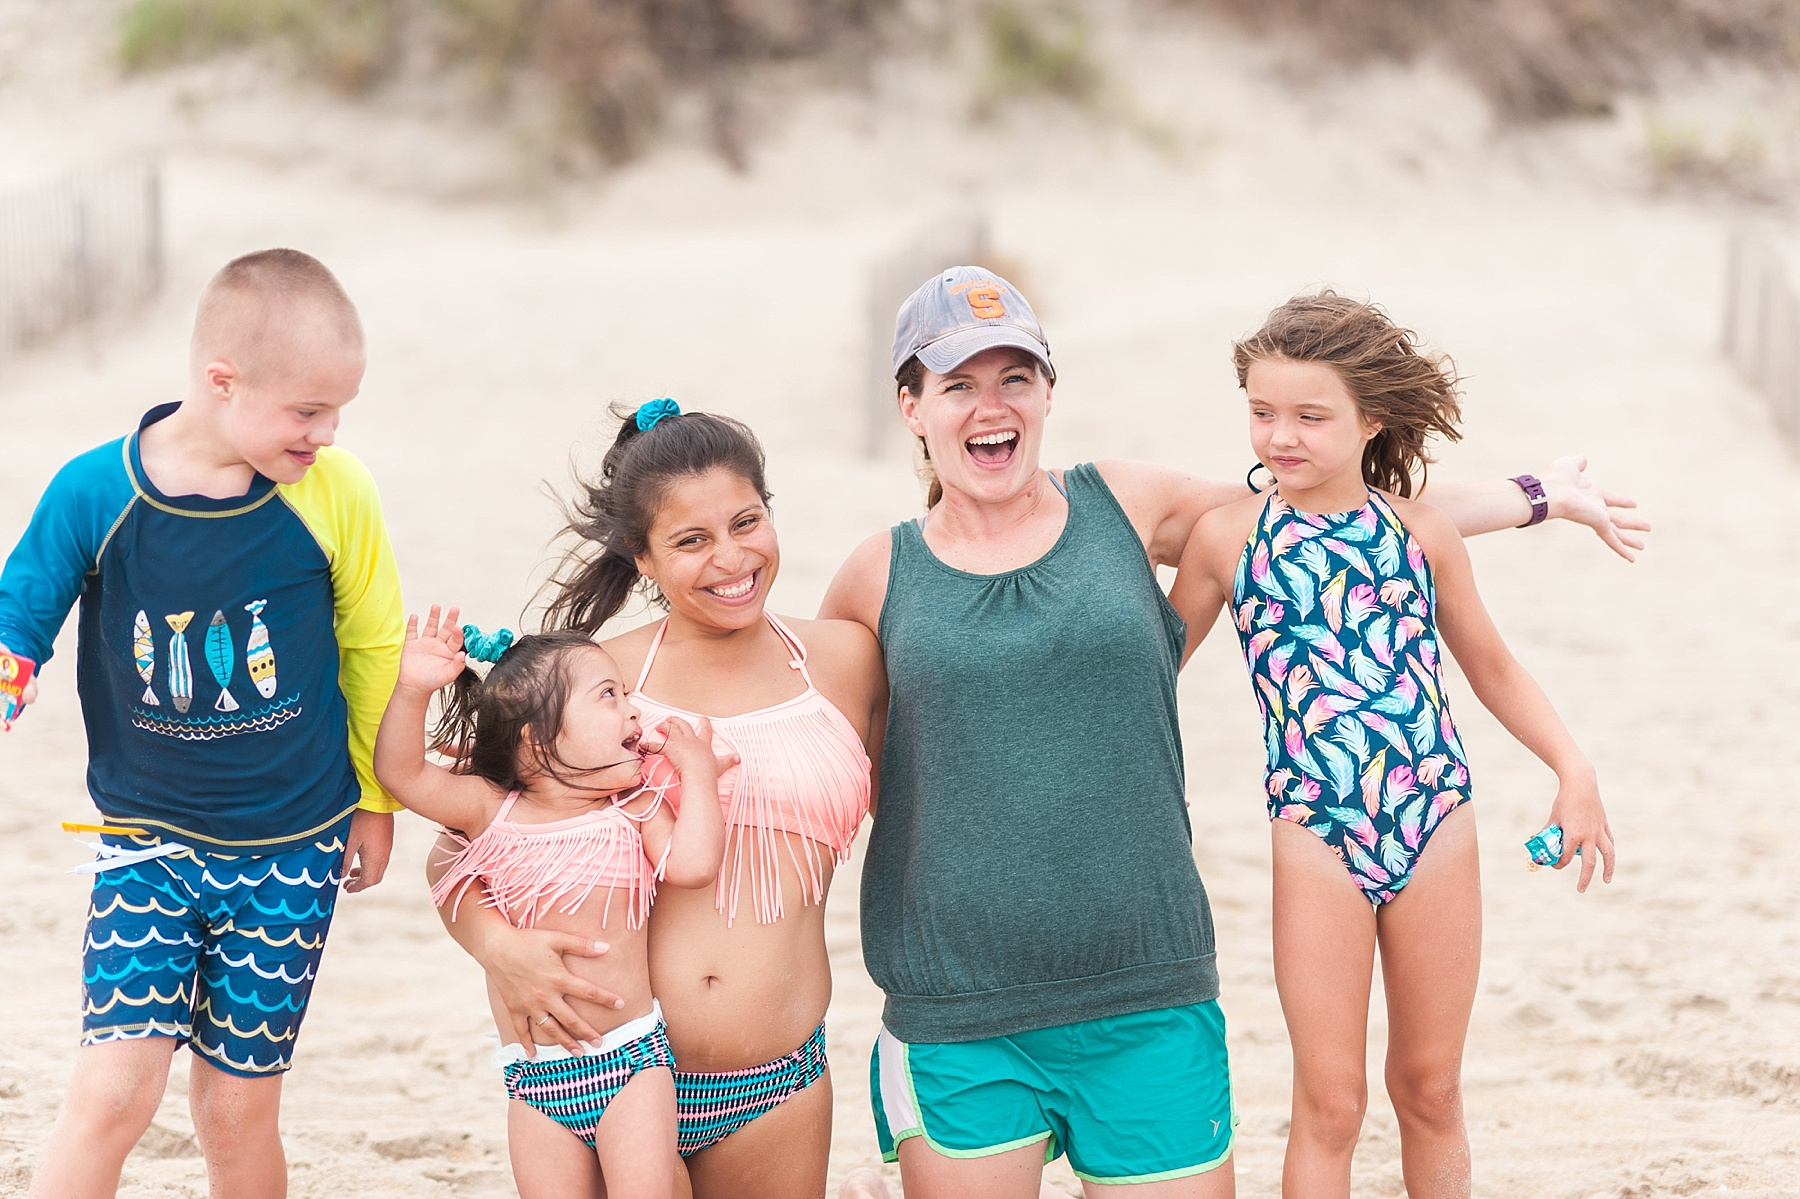 Wendy Zook Photography_Lifelong Friendships, the importance of friendships, friendship